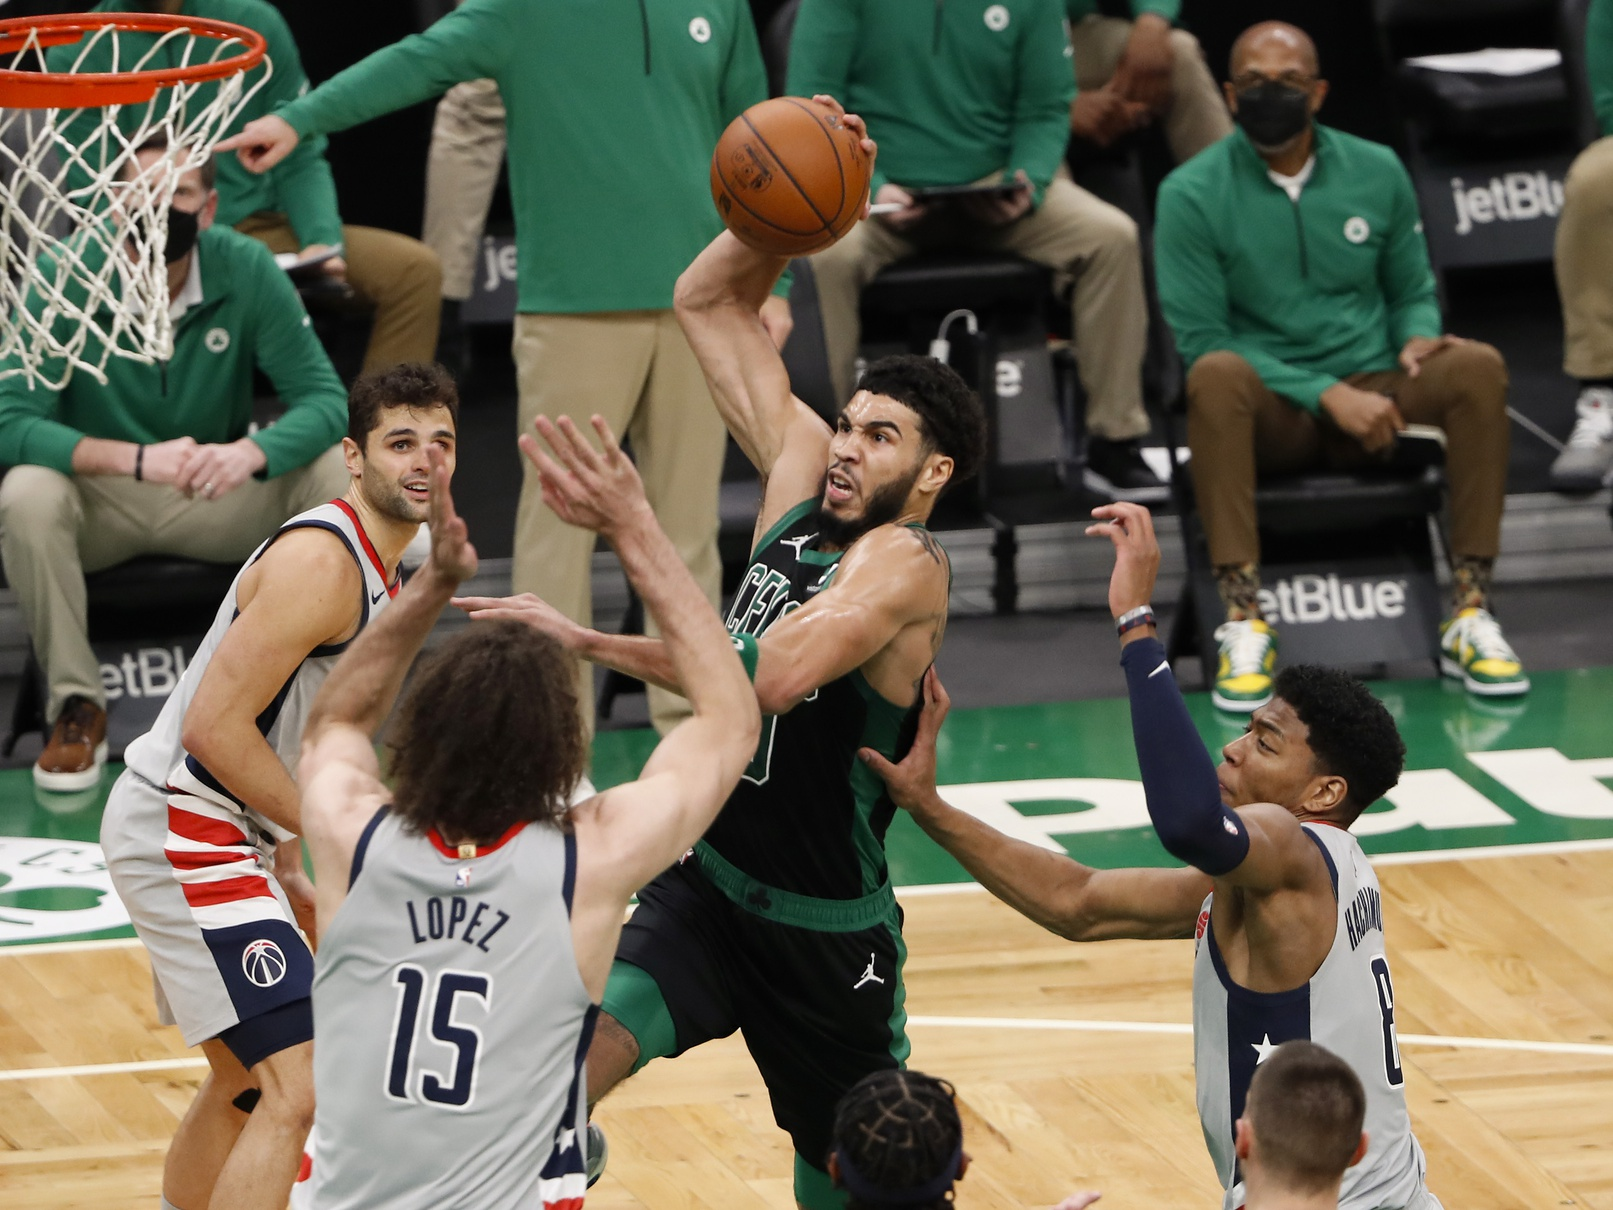 Your Morning Dump... Where Jayson Tatum satisfied all those grumpy old-timers